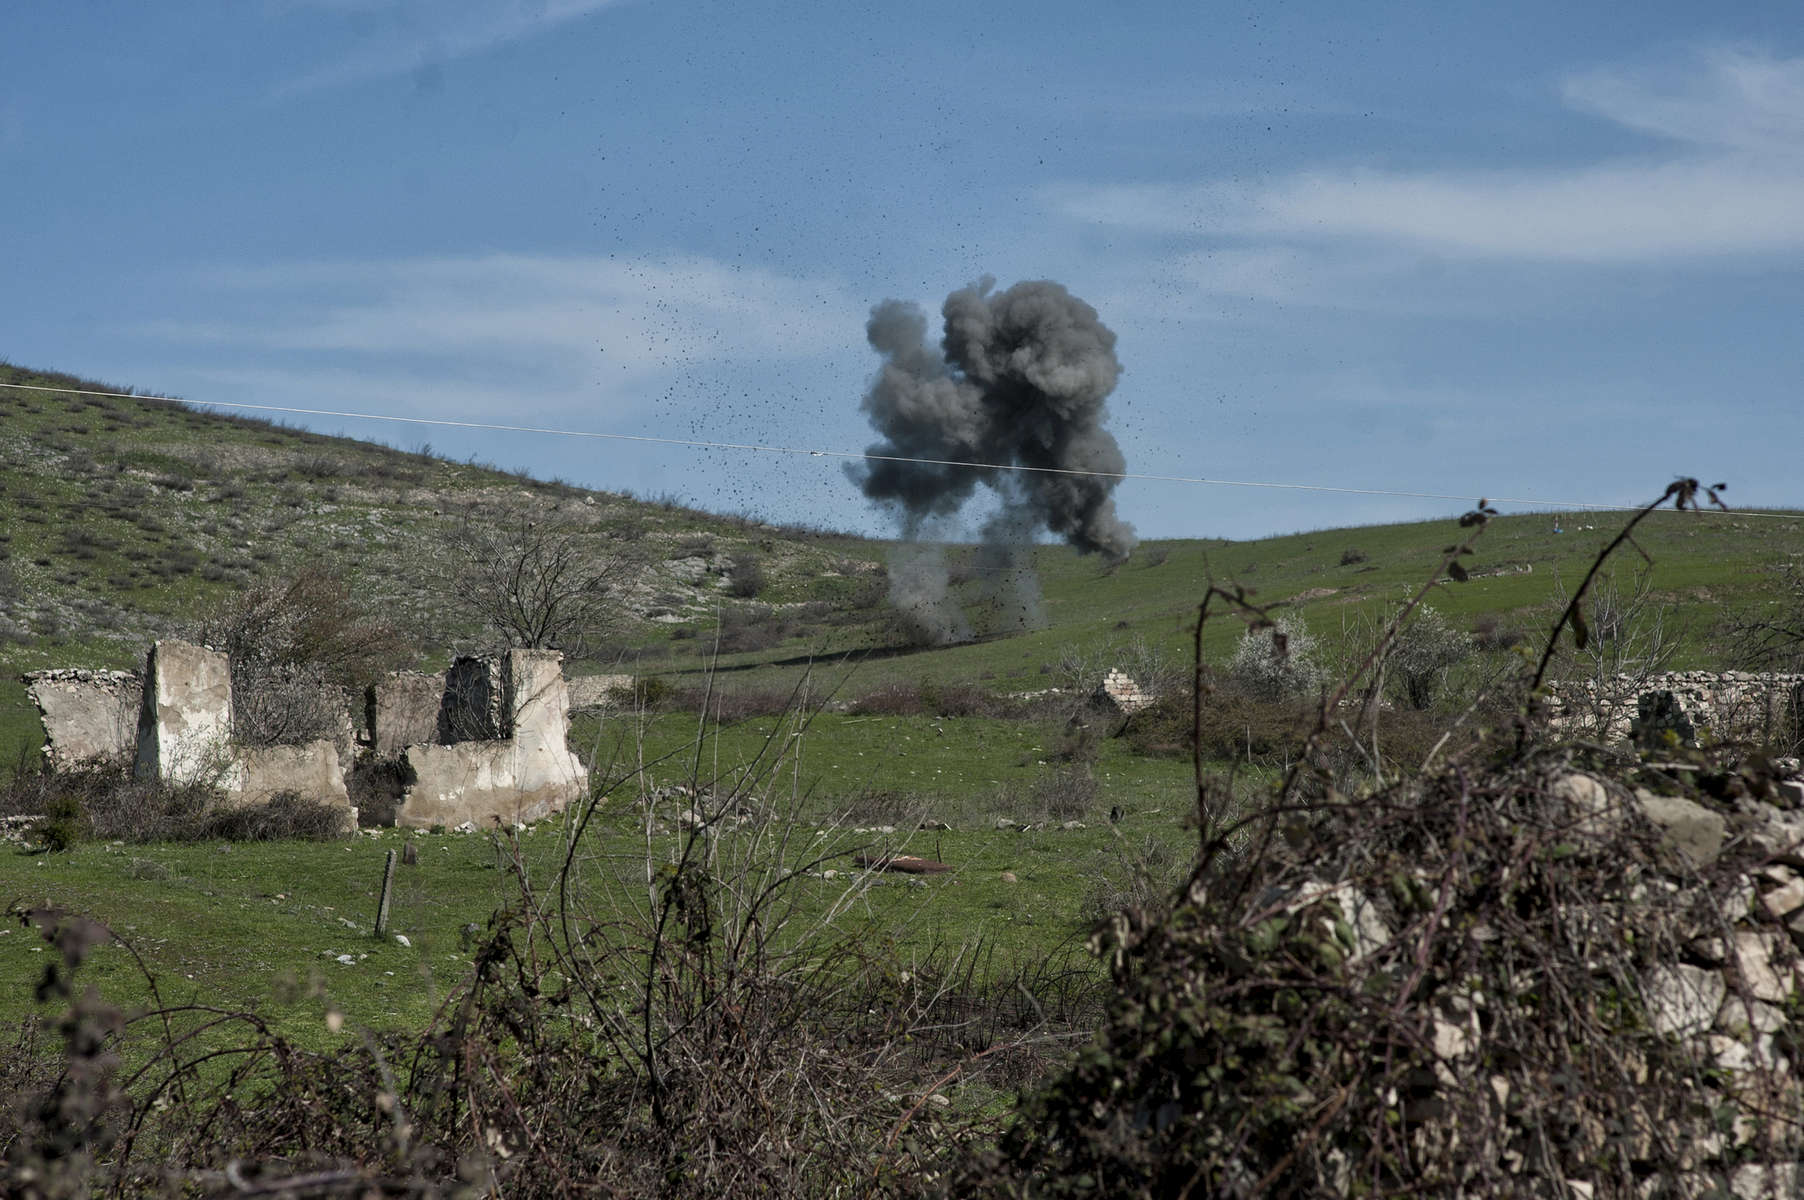 HALO deminers dispose of an anti-tank mine in the Govshatly minefield.